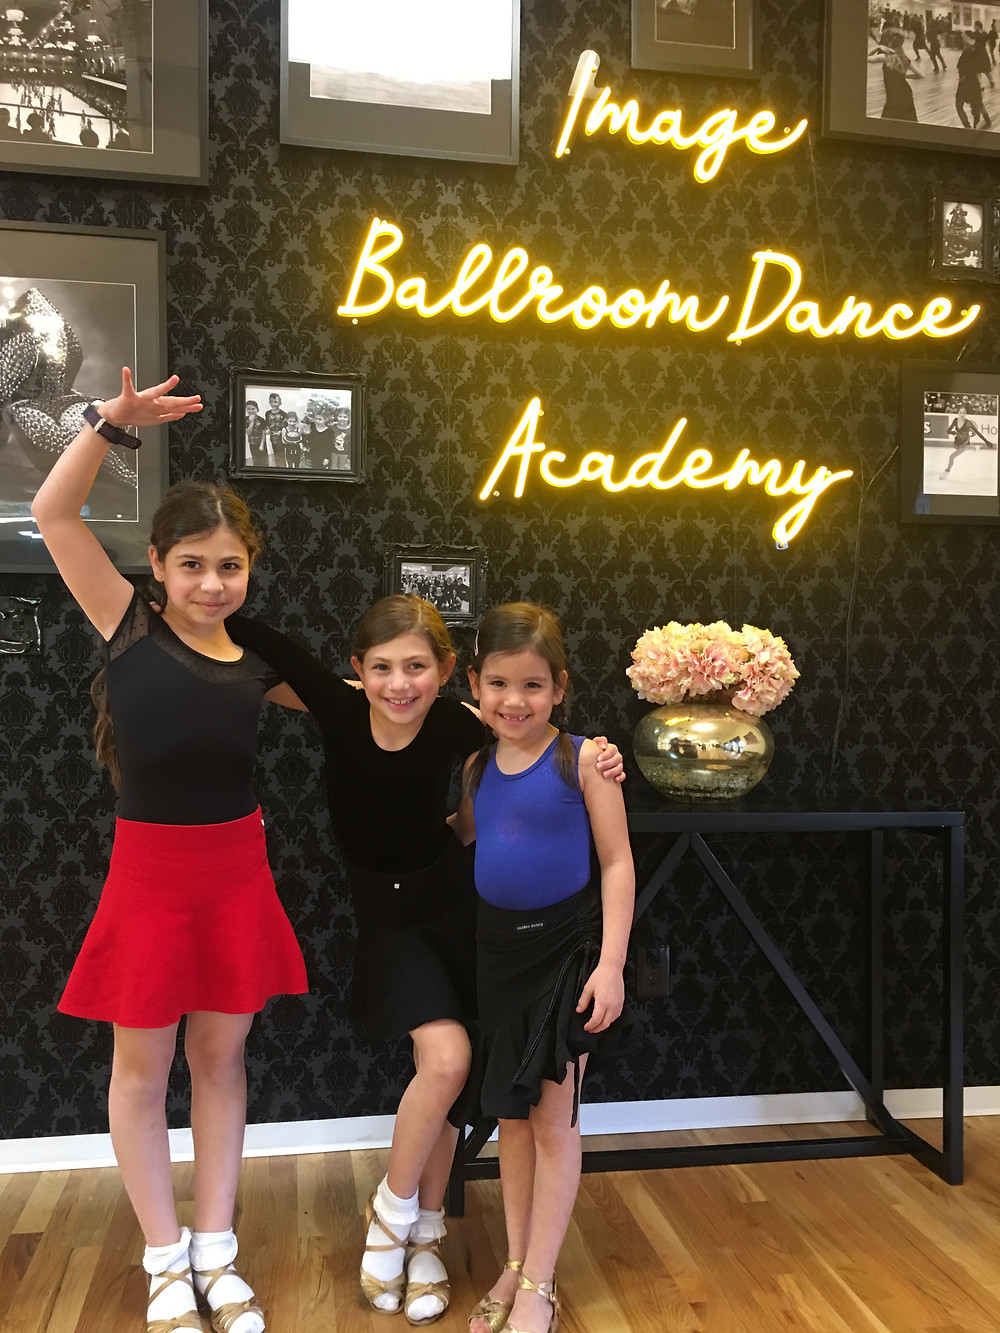 When your child experiences the joy of dancing, he or she learns about expressing themselves in a way that's beneficial to their physical and mental health. During ballroom dance lessons, a child gains a better understanding of their body and how it moves. Children with a background in dance are typically more comfortable about their body and have improved levels of self-confidence which creates an enhanced emotional development. It takes great courage and confidence to dance on stage in front of an audience, and dance helps encourage both of these wonderful qualities. Dance also helps foster a positive attitude. The instructors at Image Ballroom Dance Academy will help create an encouraging environment that helps turn each Ballroom Dance Lesson into a positive, constructive experience.